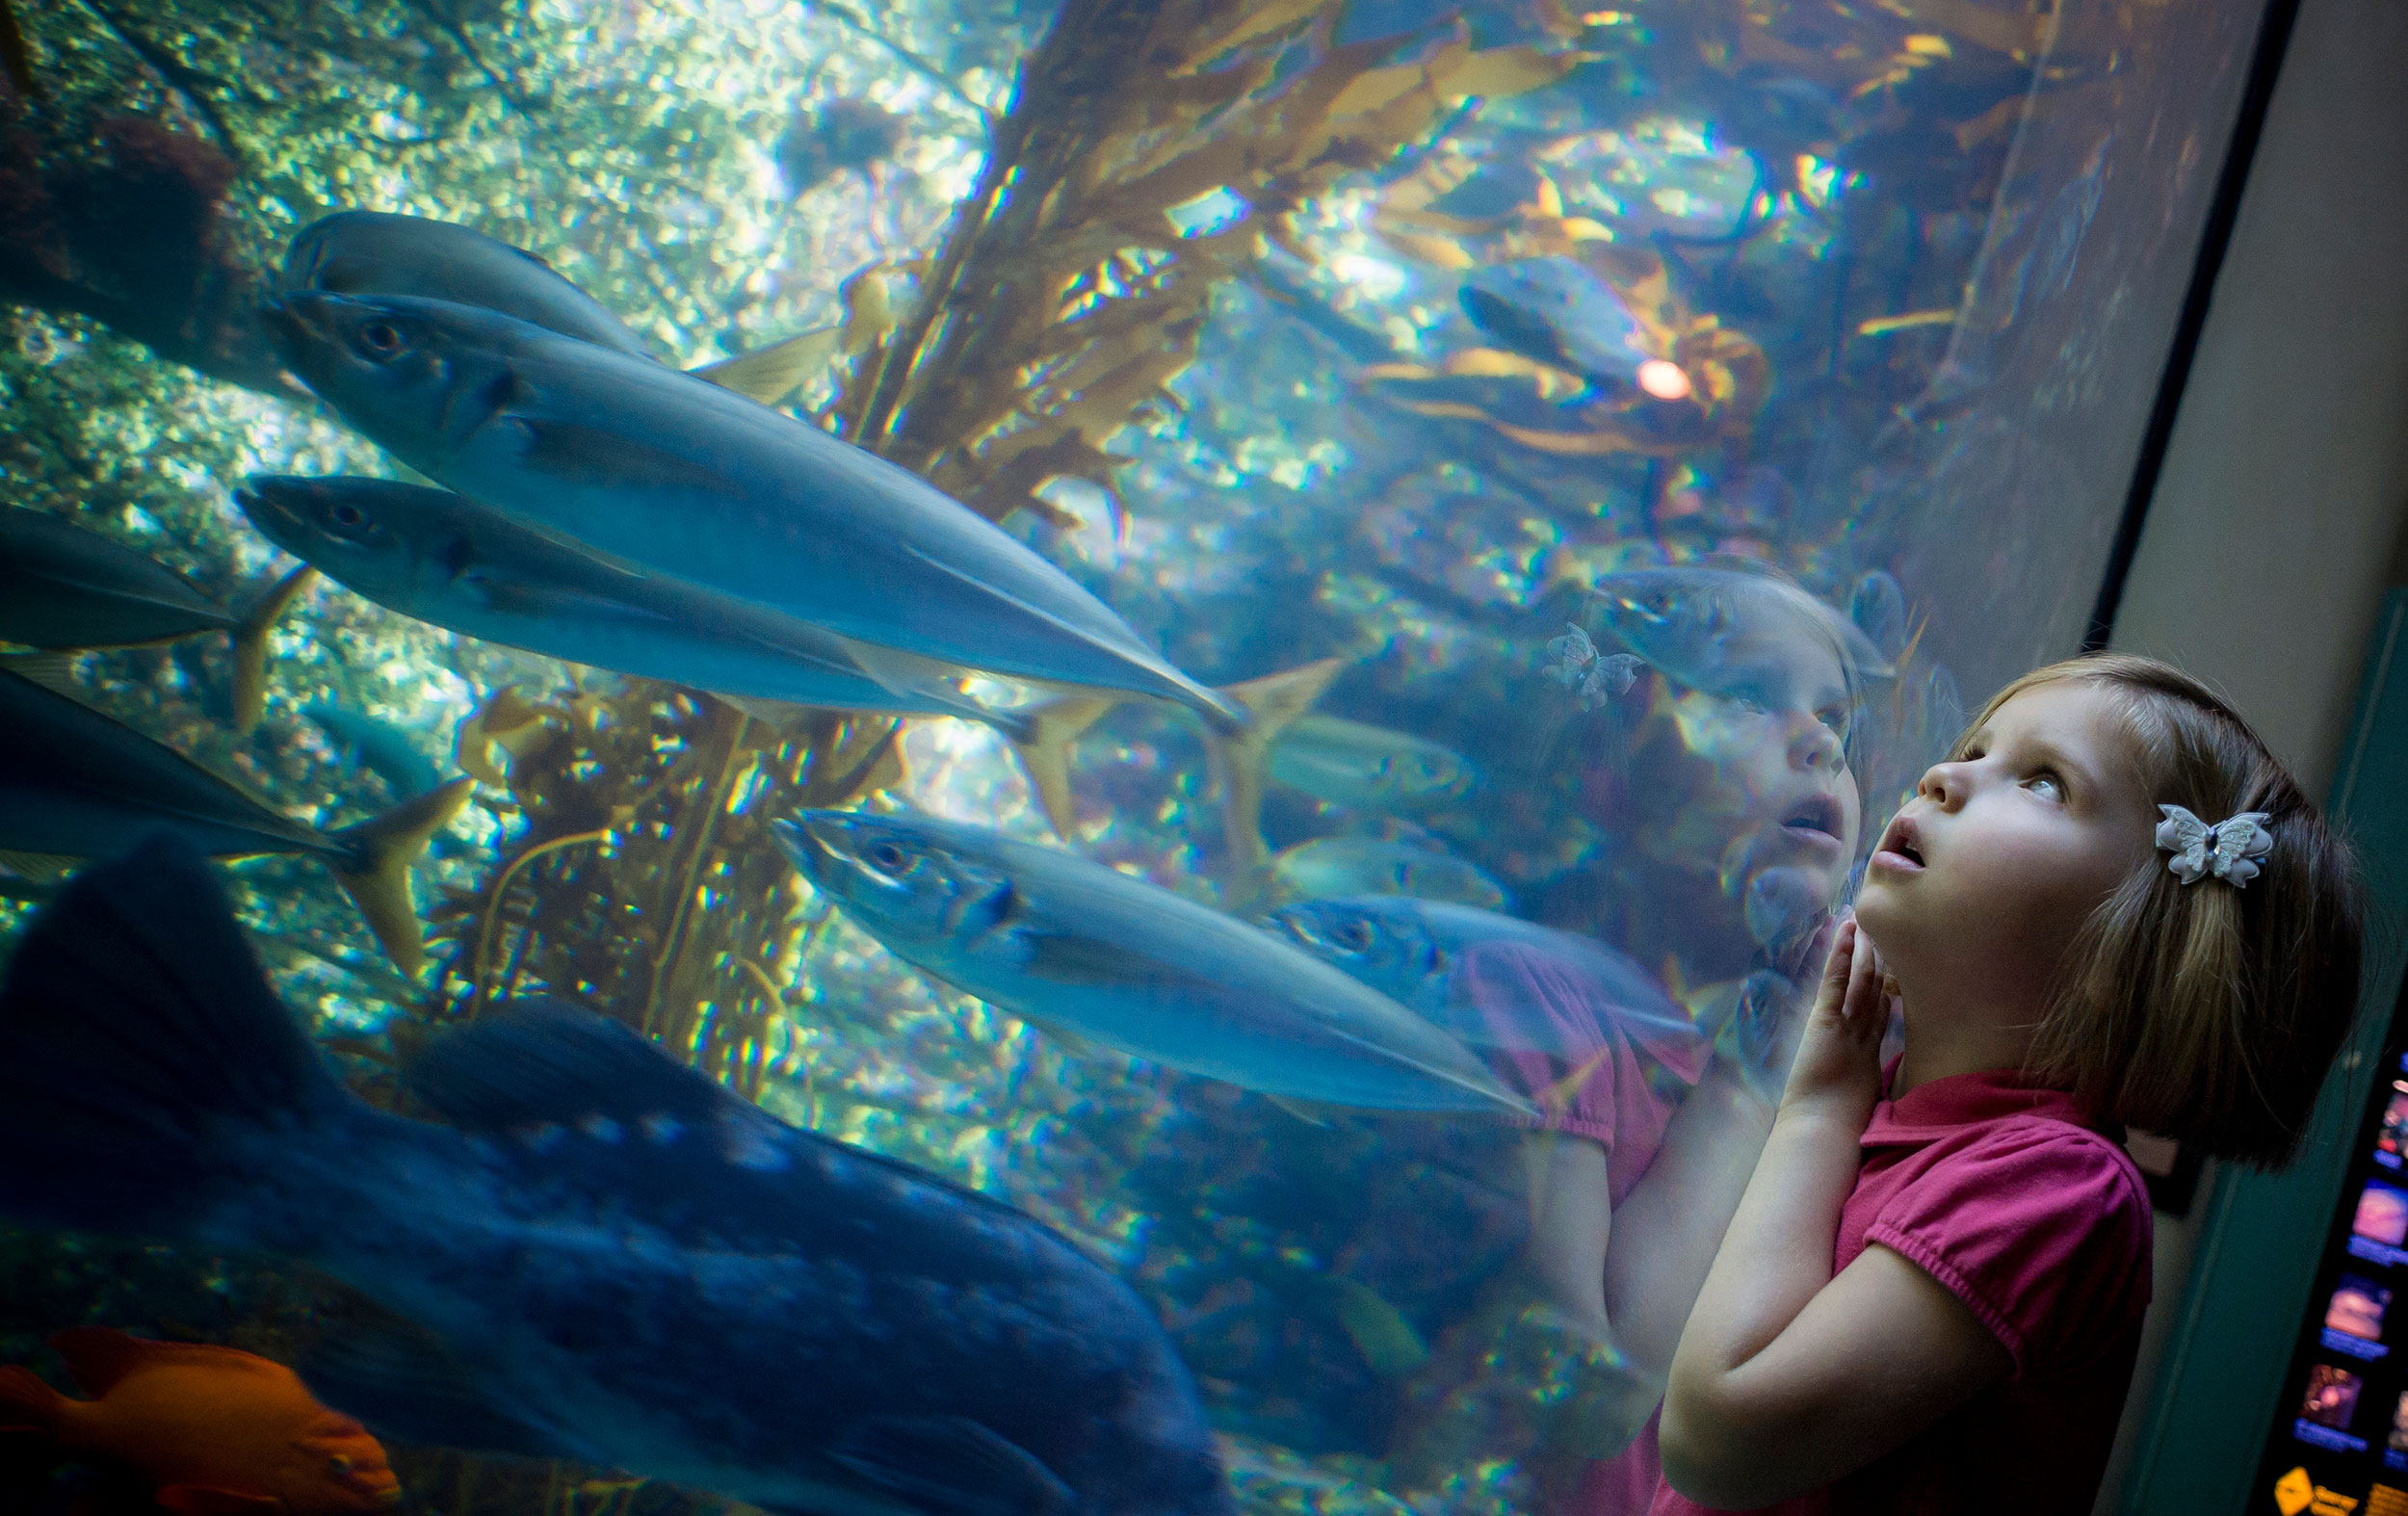 Birch Aquarium at Scripps | Home